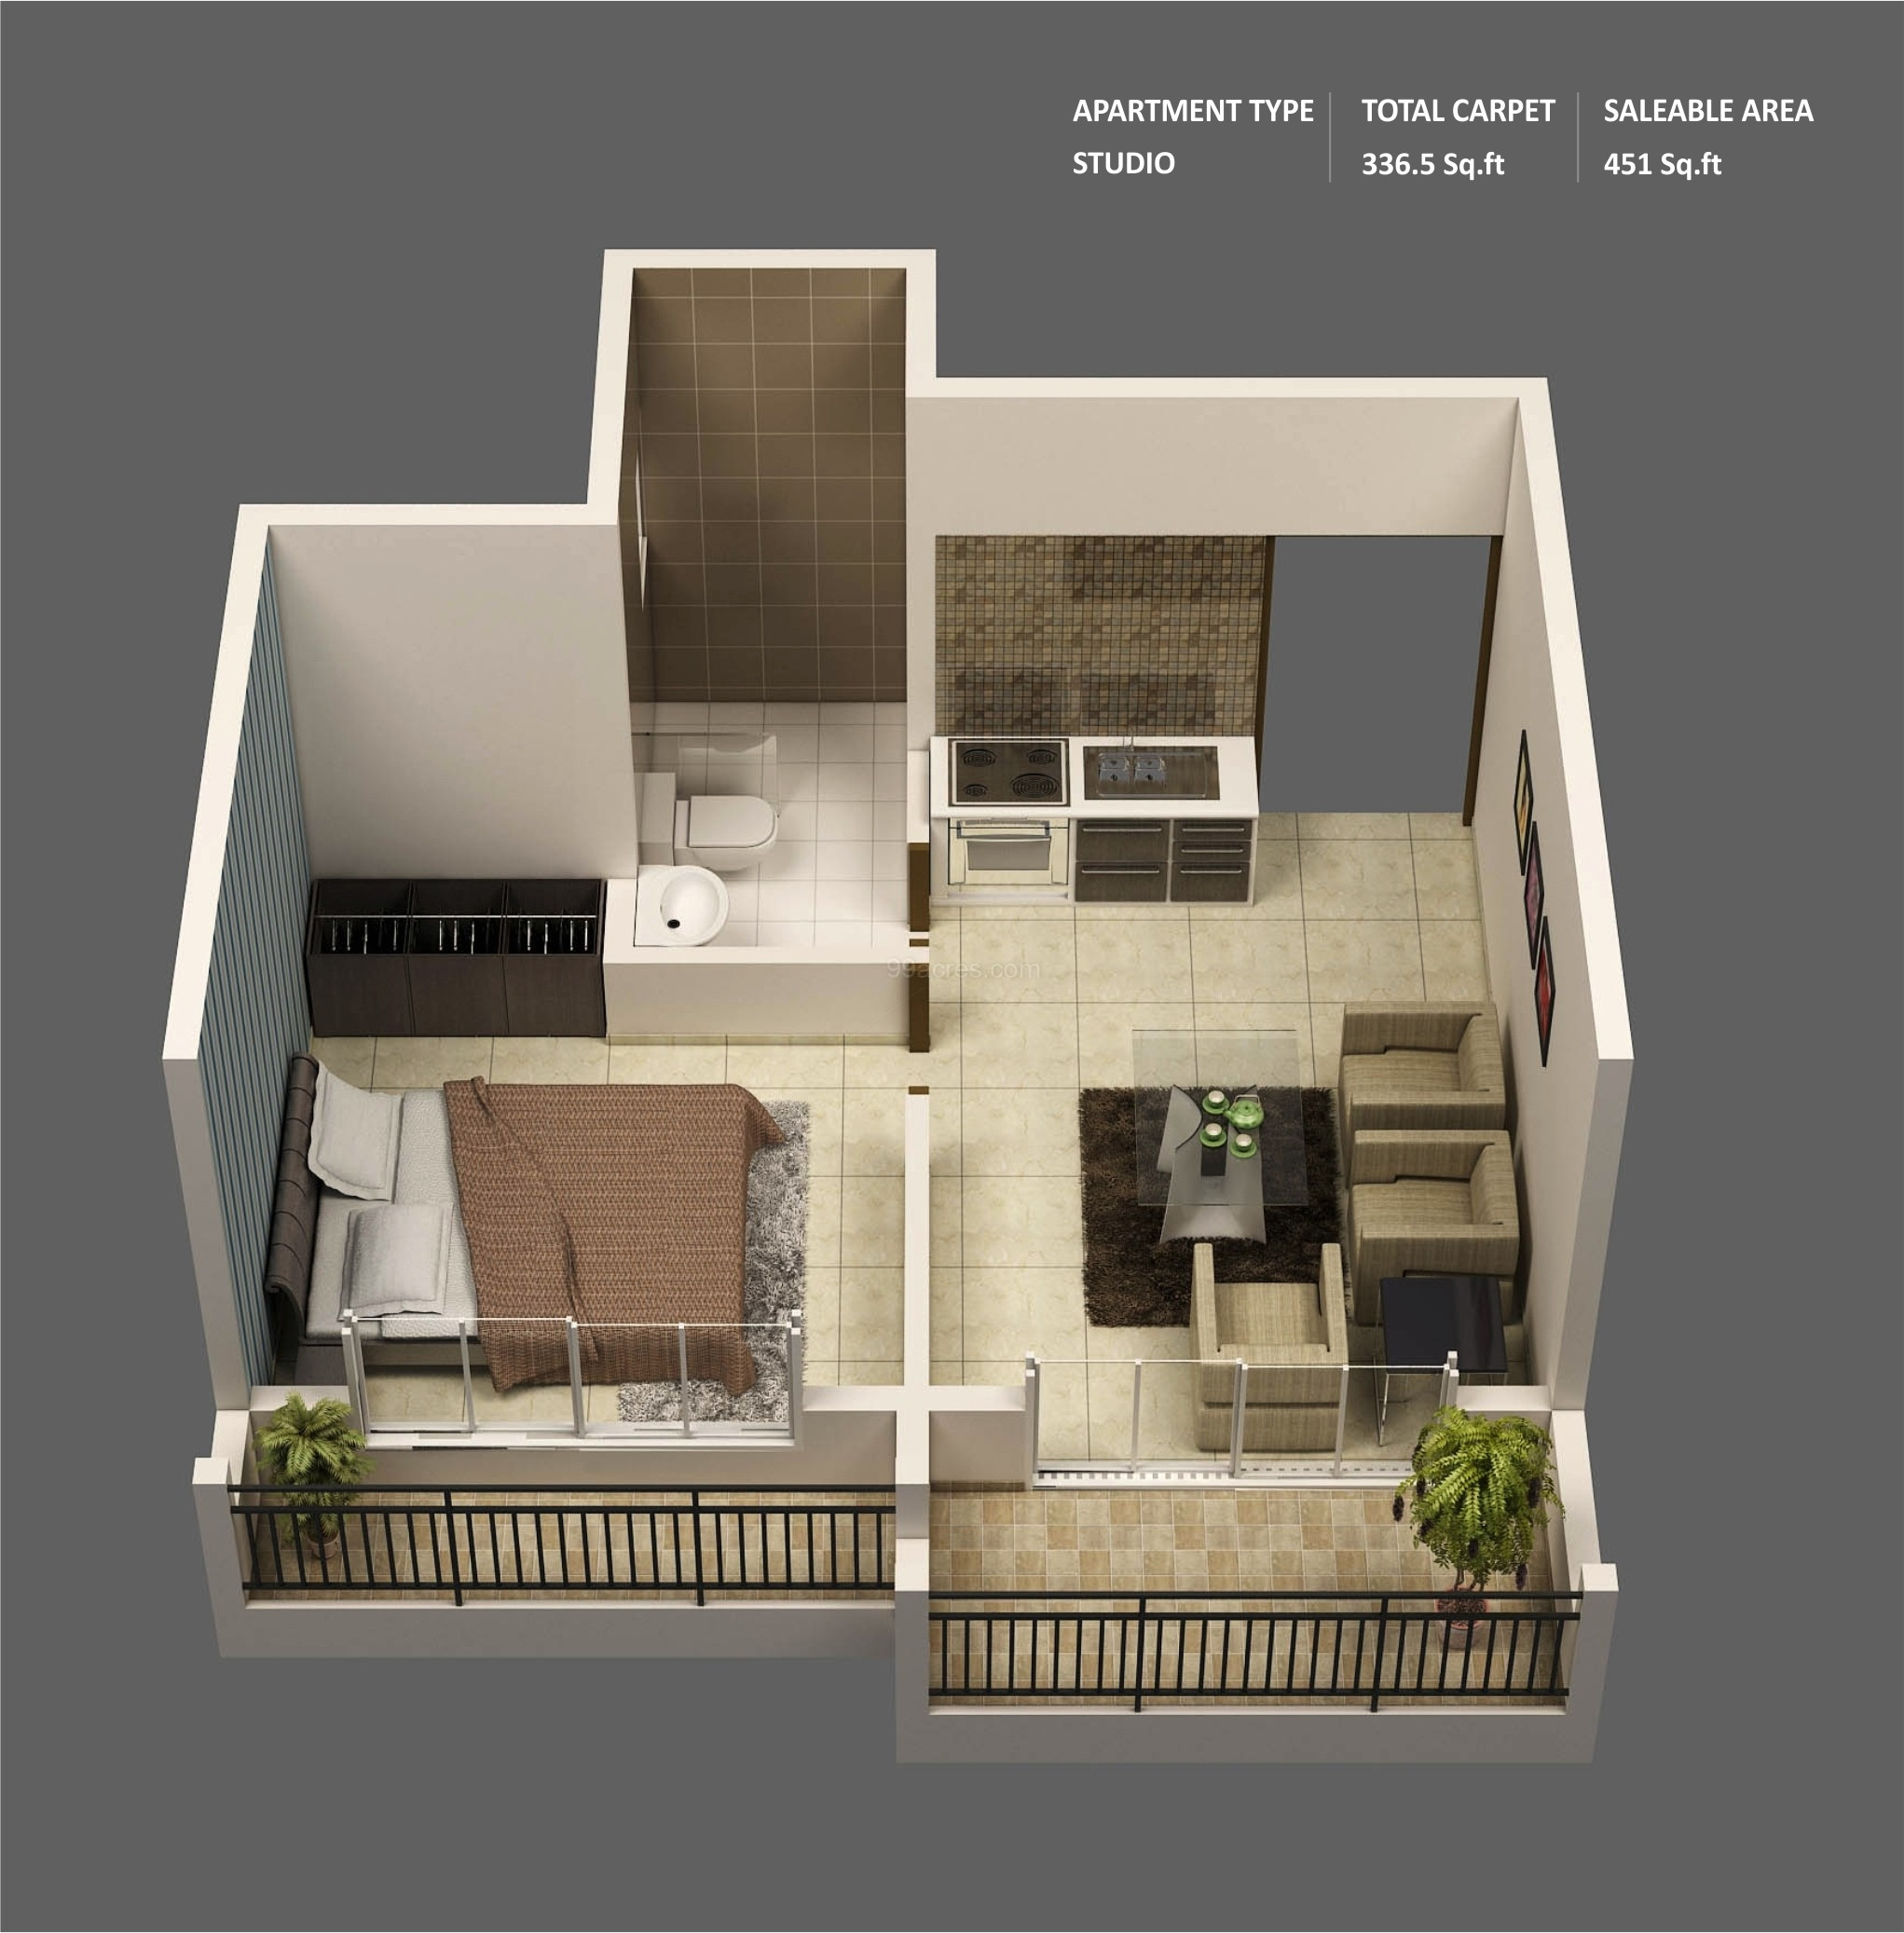 1 bedroom apartment house plans for Studio apartment blueprints